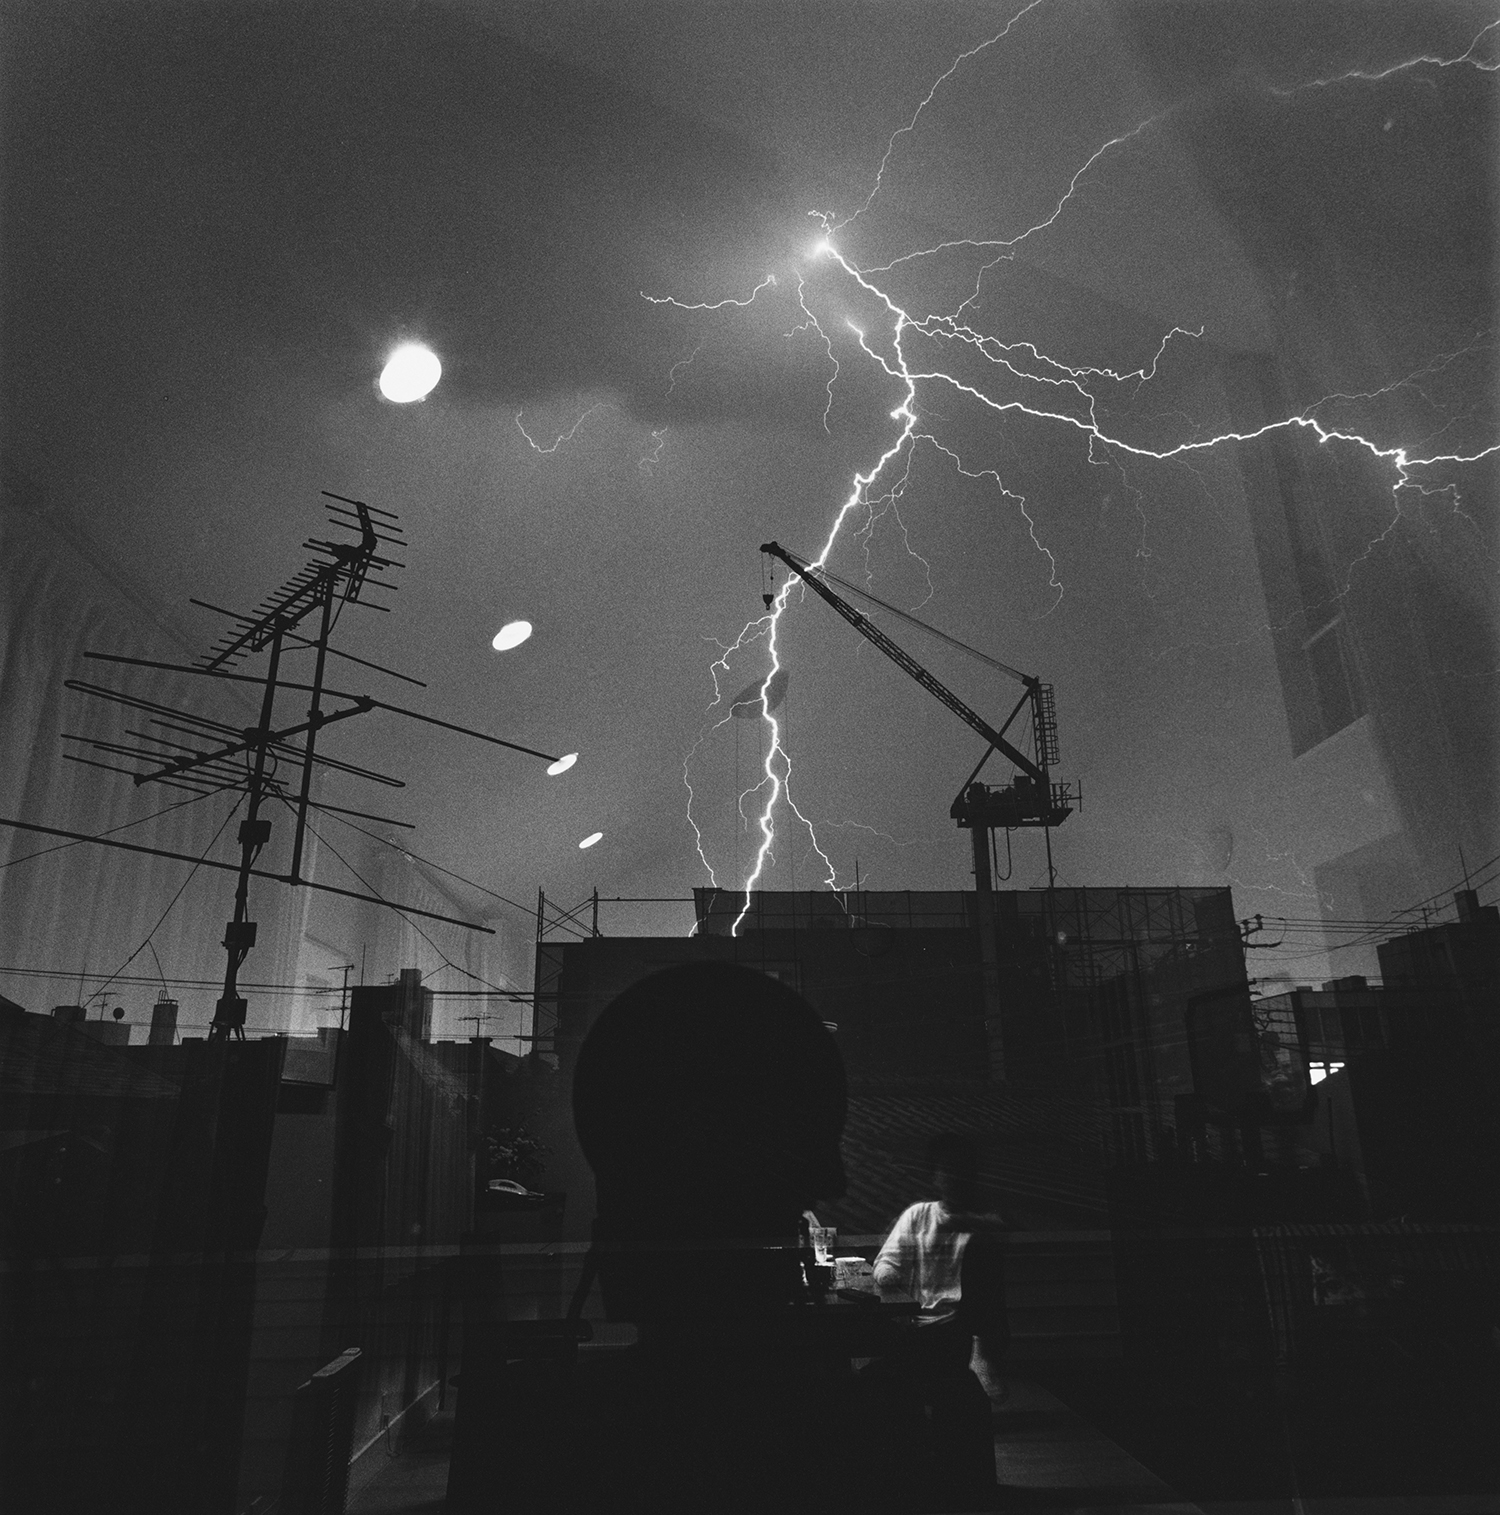 Thunderbolts  (1992) from  T he Last Cosmology    (2015) by Kikuji Kawada, published by MACK    mackbooks.co.uk